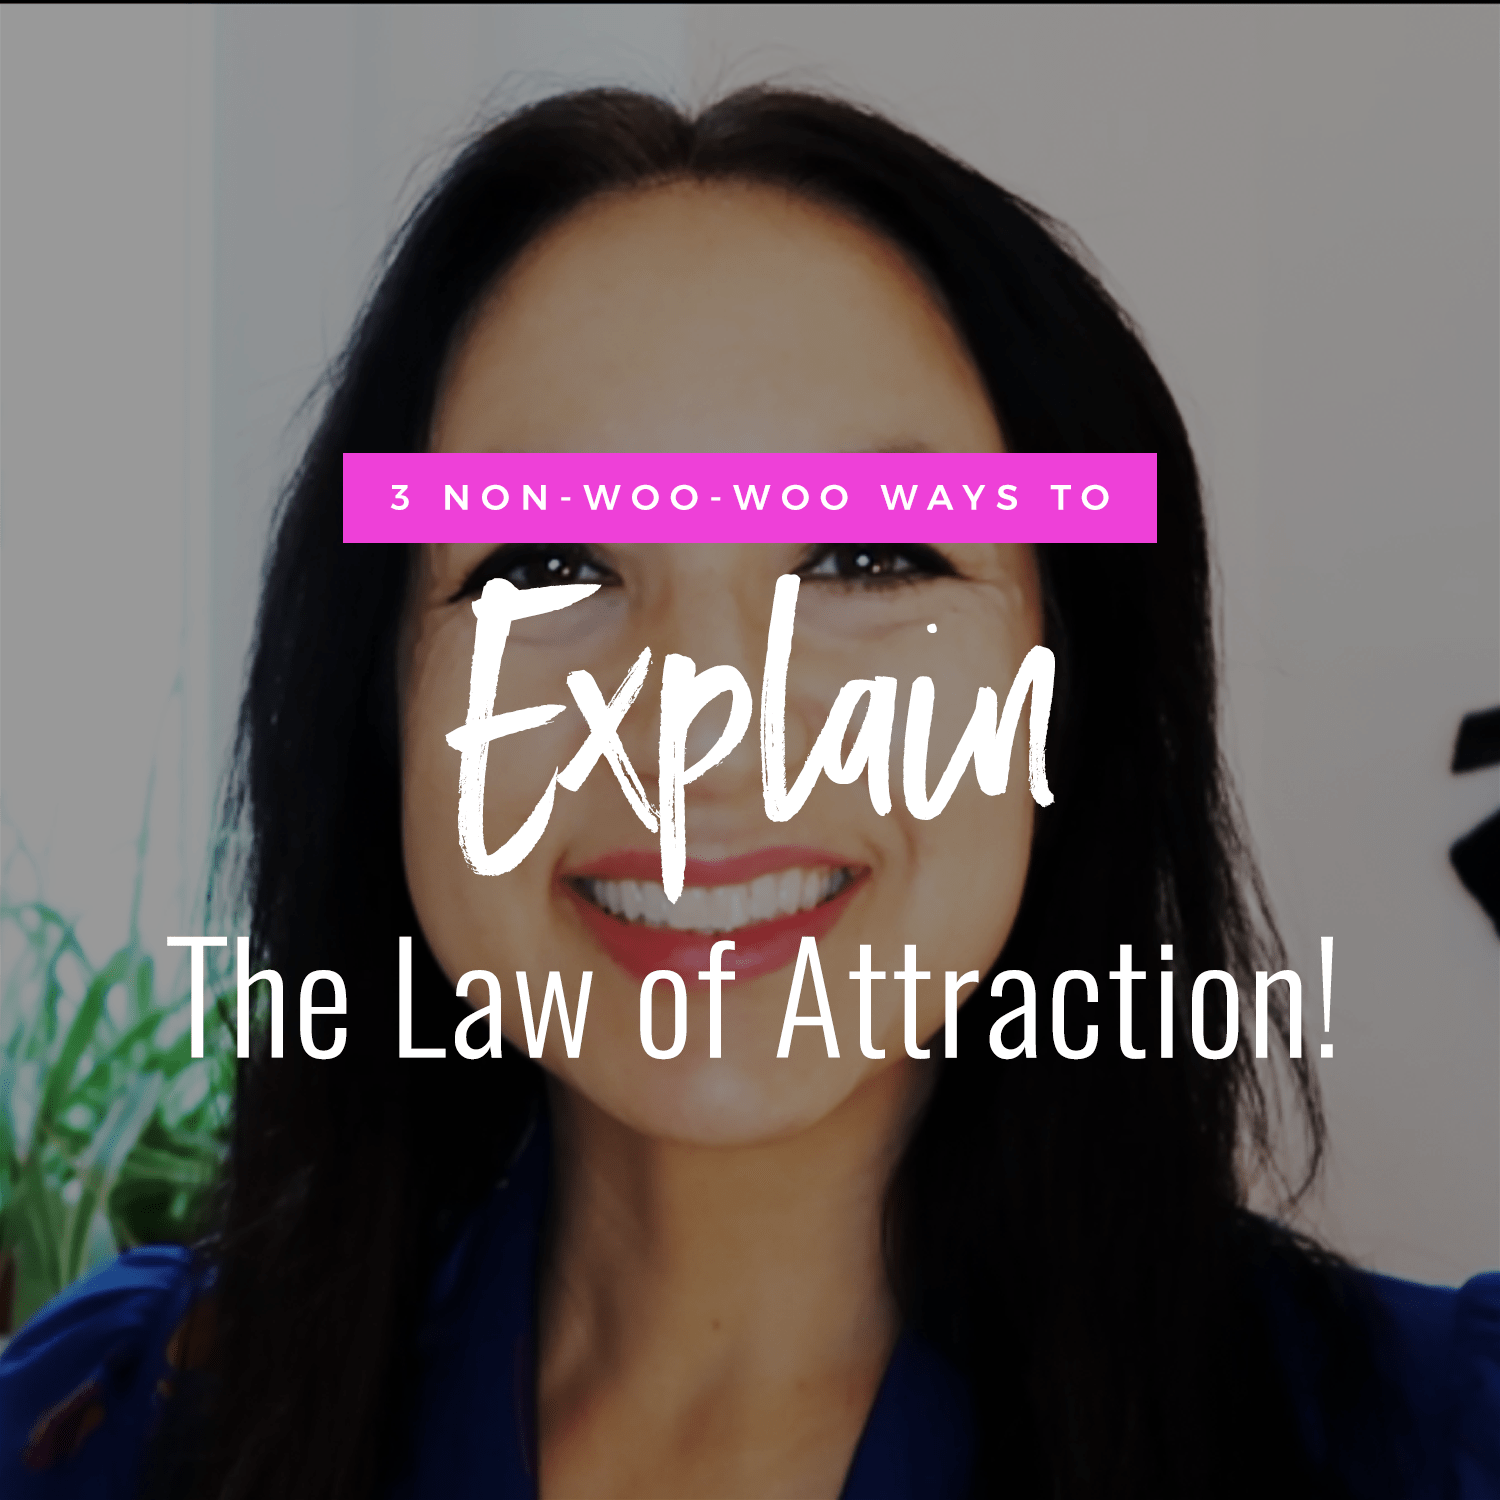 3 Non Woo-Woo Ways To Explain The Law of Attraction